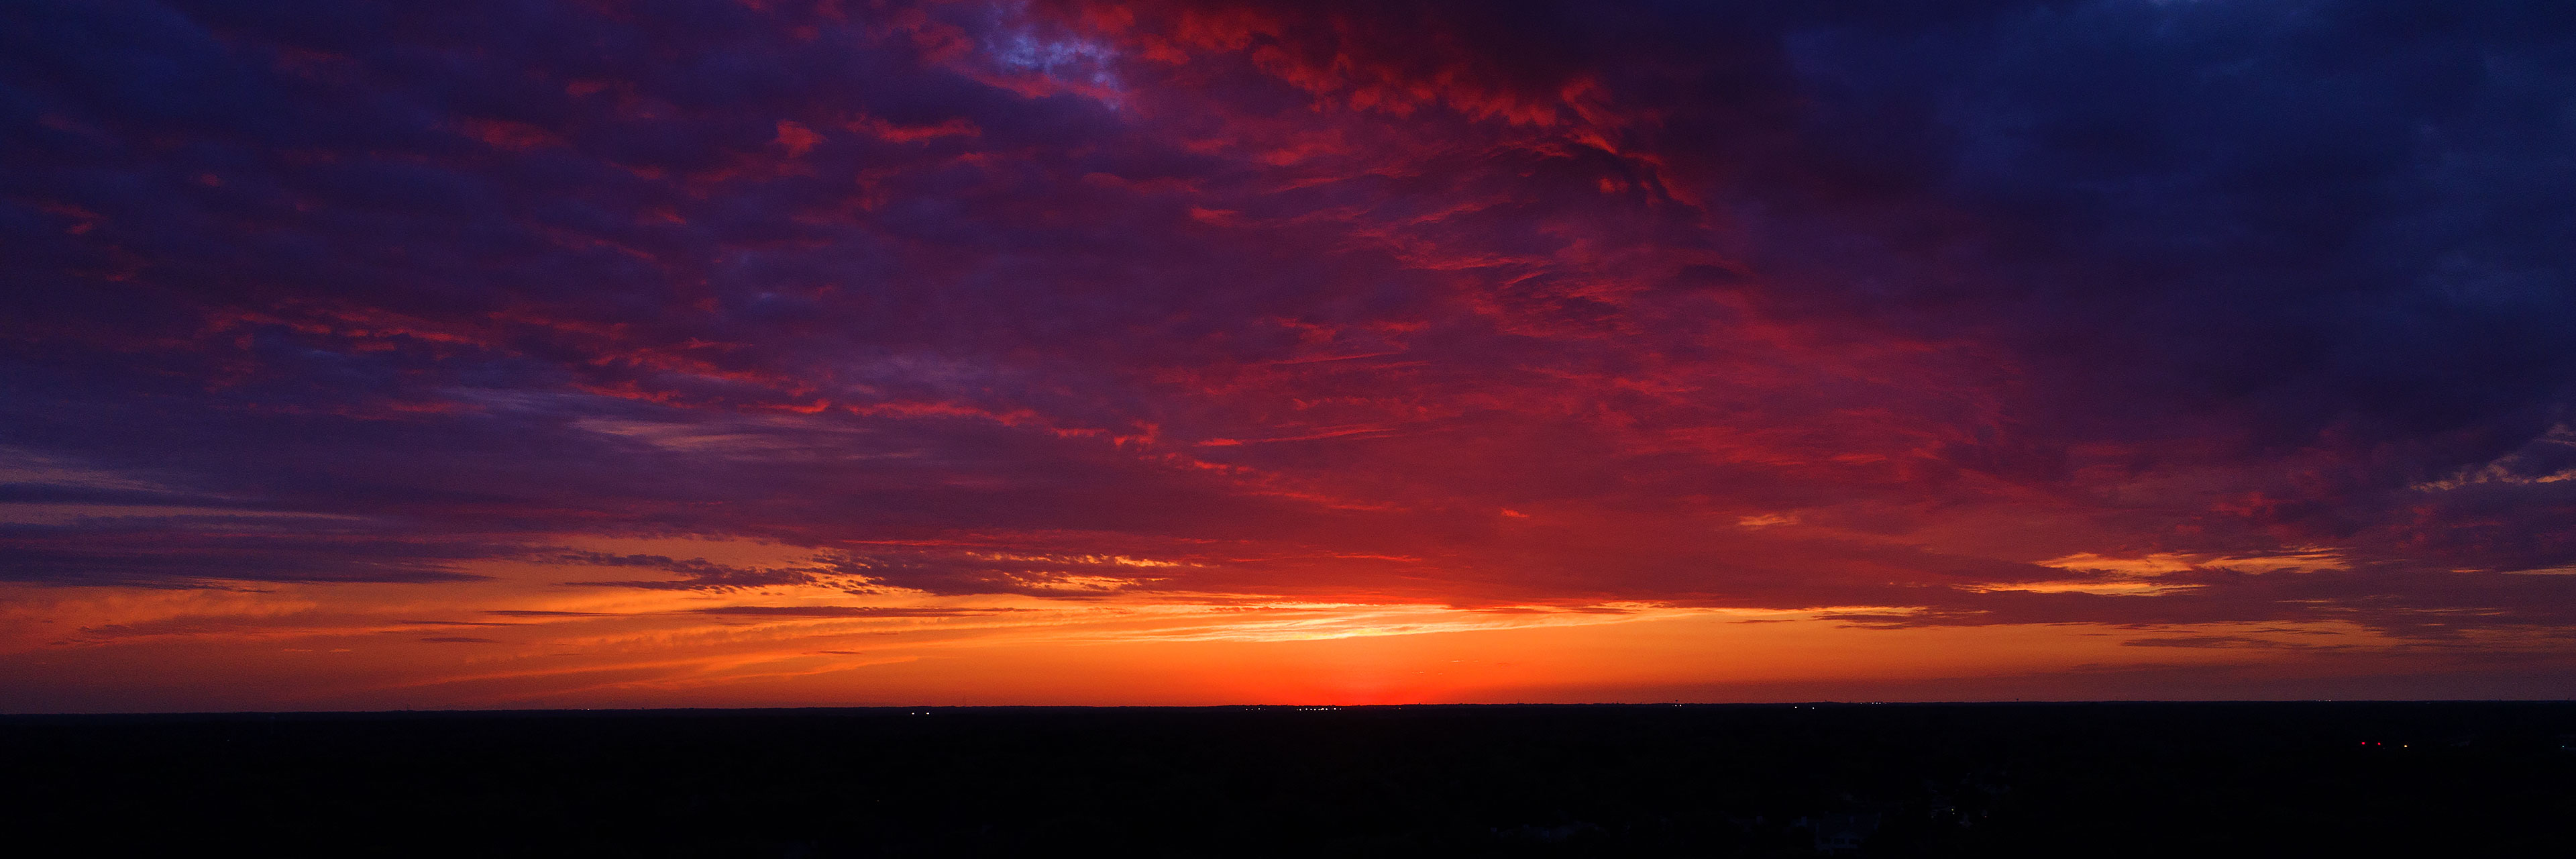 One nice summer sunset in Deerfield, Illinois photographed by Jacob Rosenfeld for Unmanned Pix